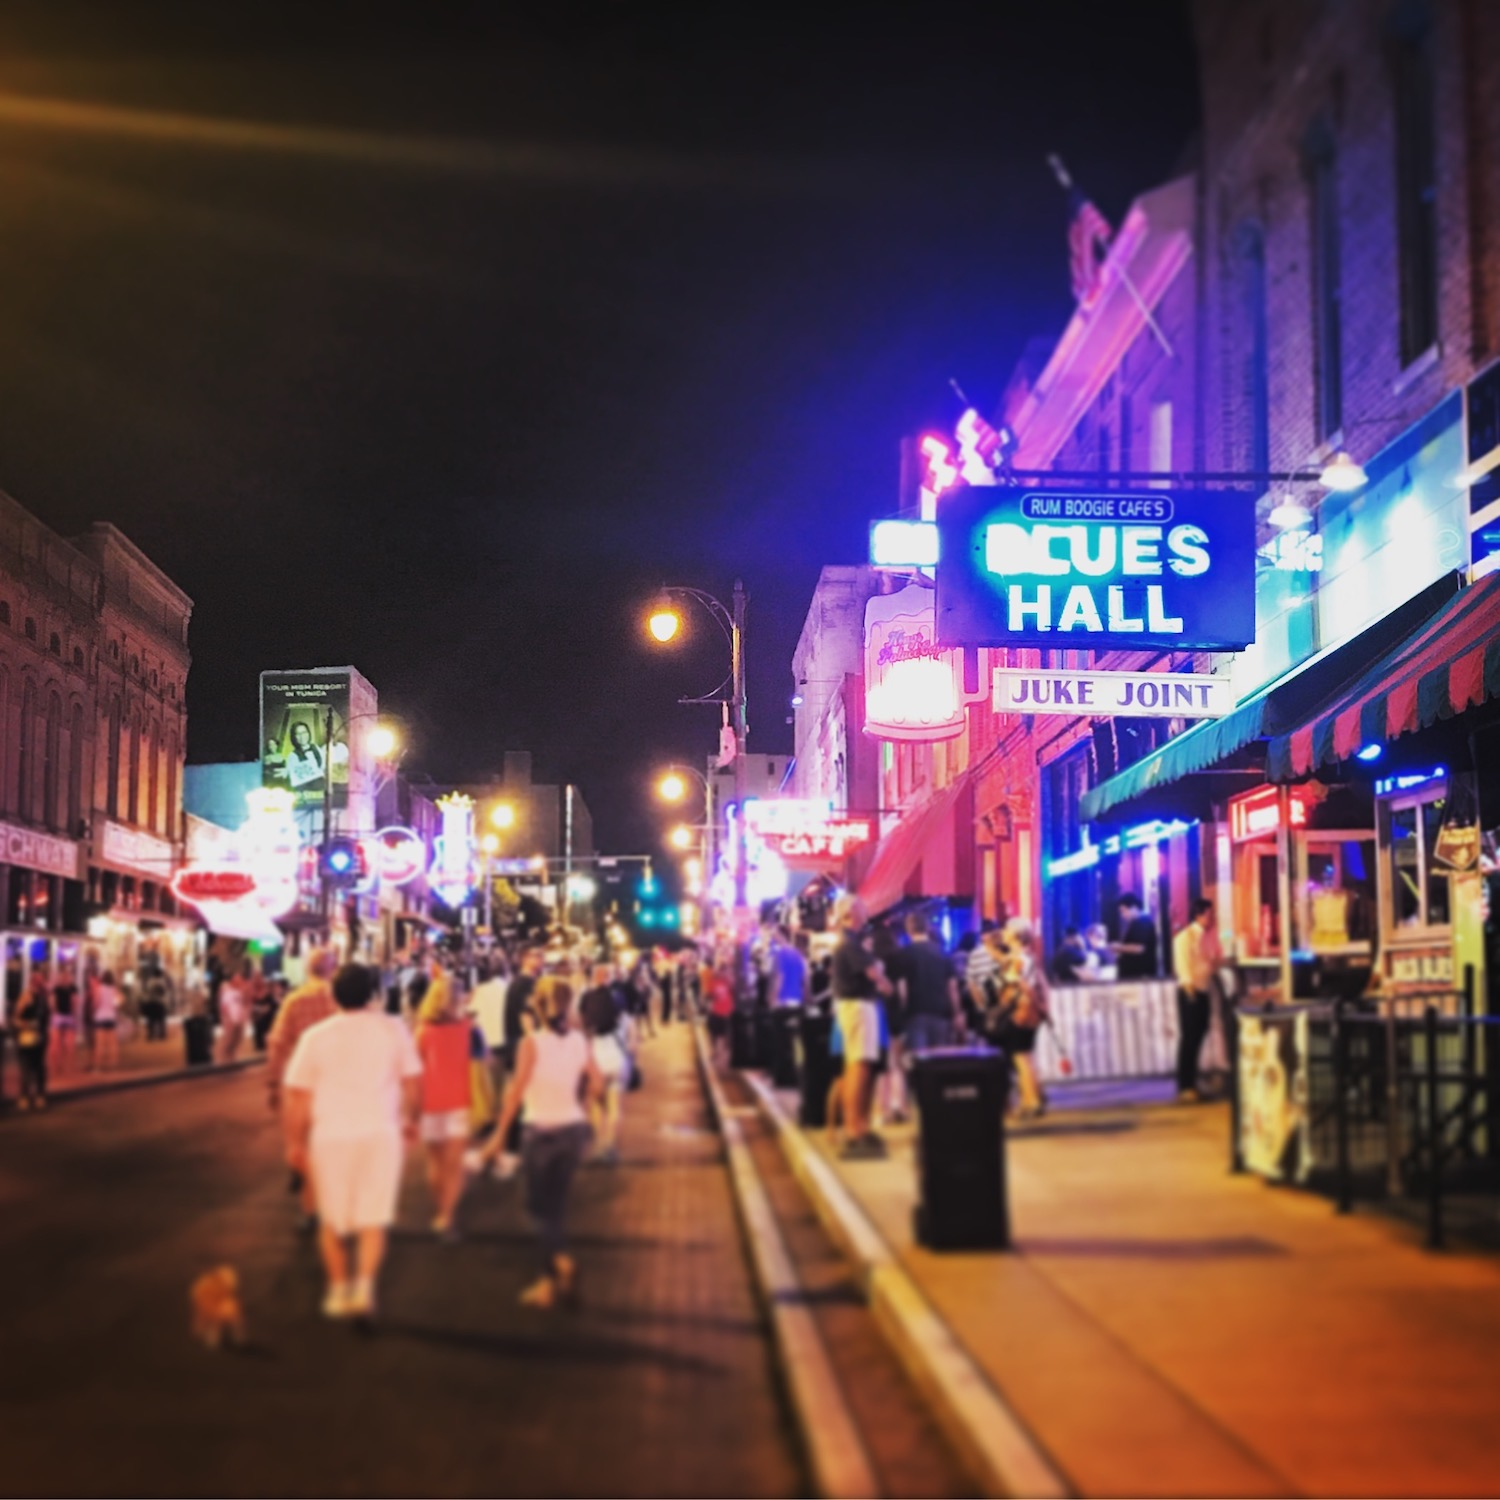 Sometimes it's OK to be a bit of a tourist. I stopped for BBQ on Beale Street in Memphis, Tennessee while traveling on business two weeks ago.